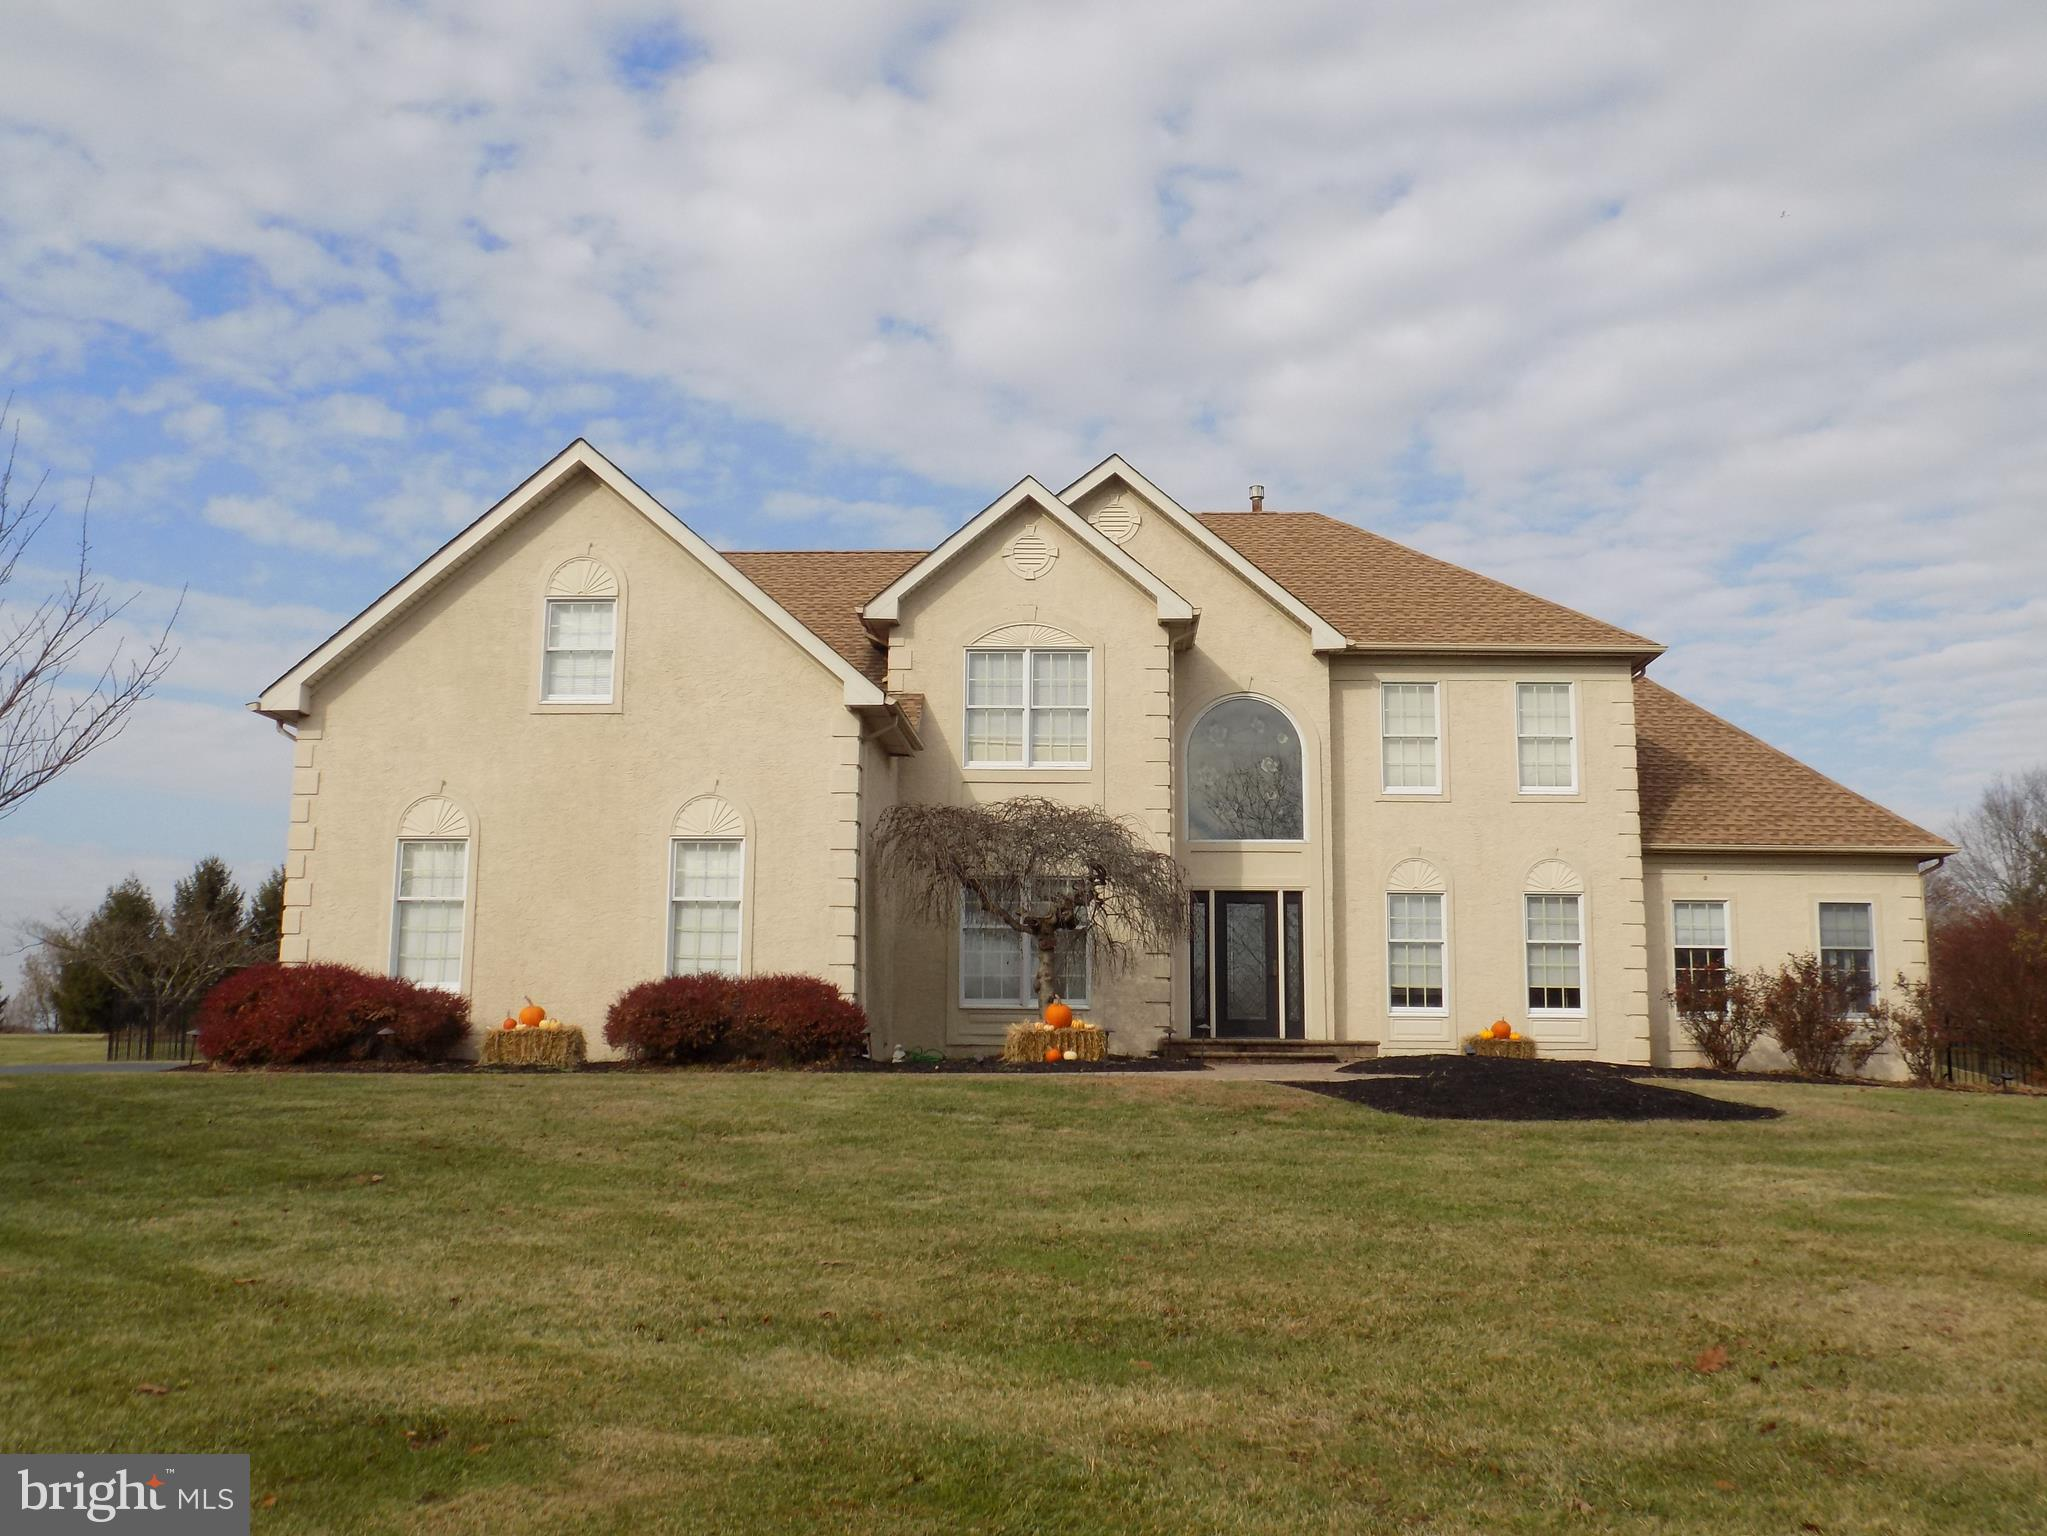 509 CARRIAGE HOUSE LANE, HARLEYSVILLE, PA 19438